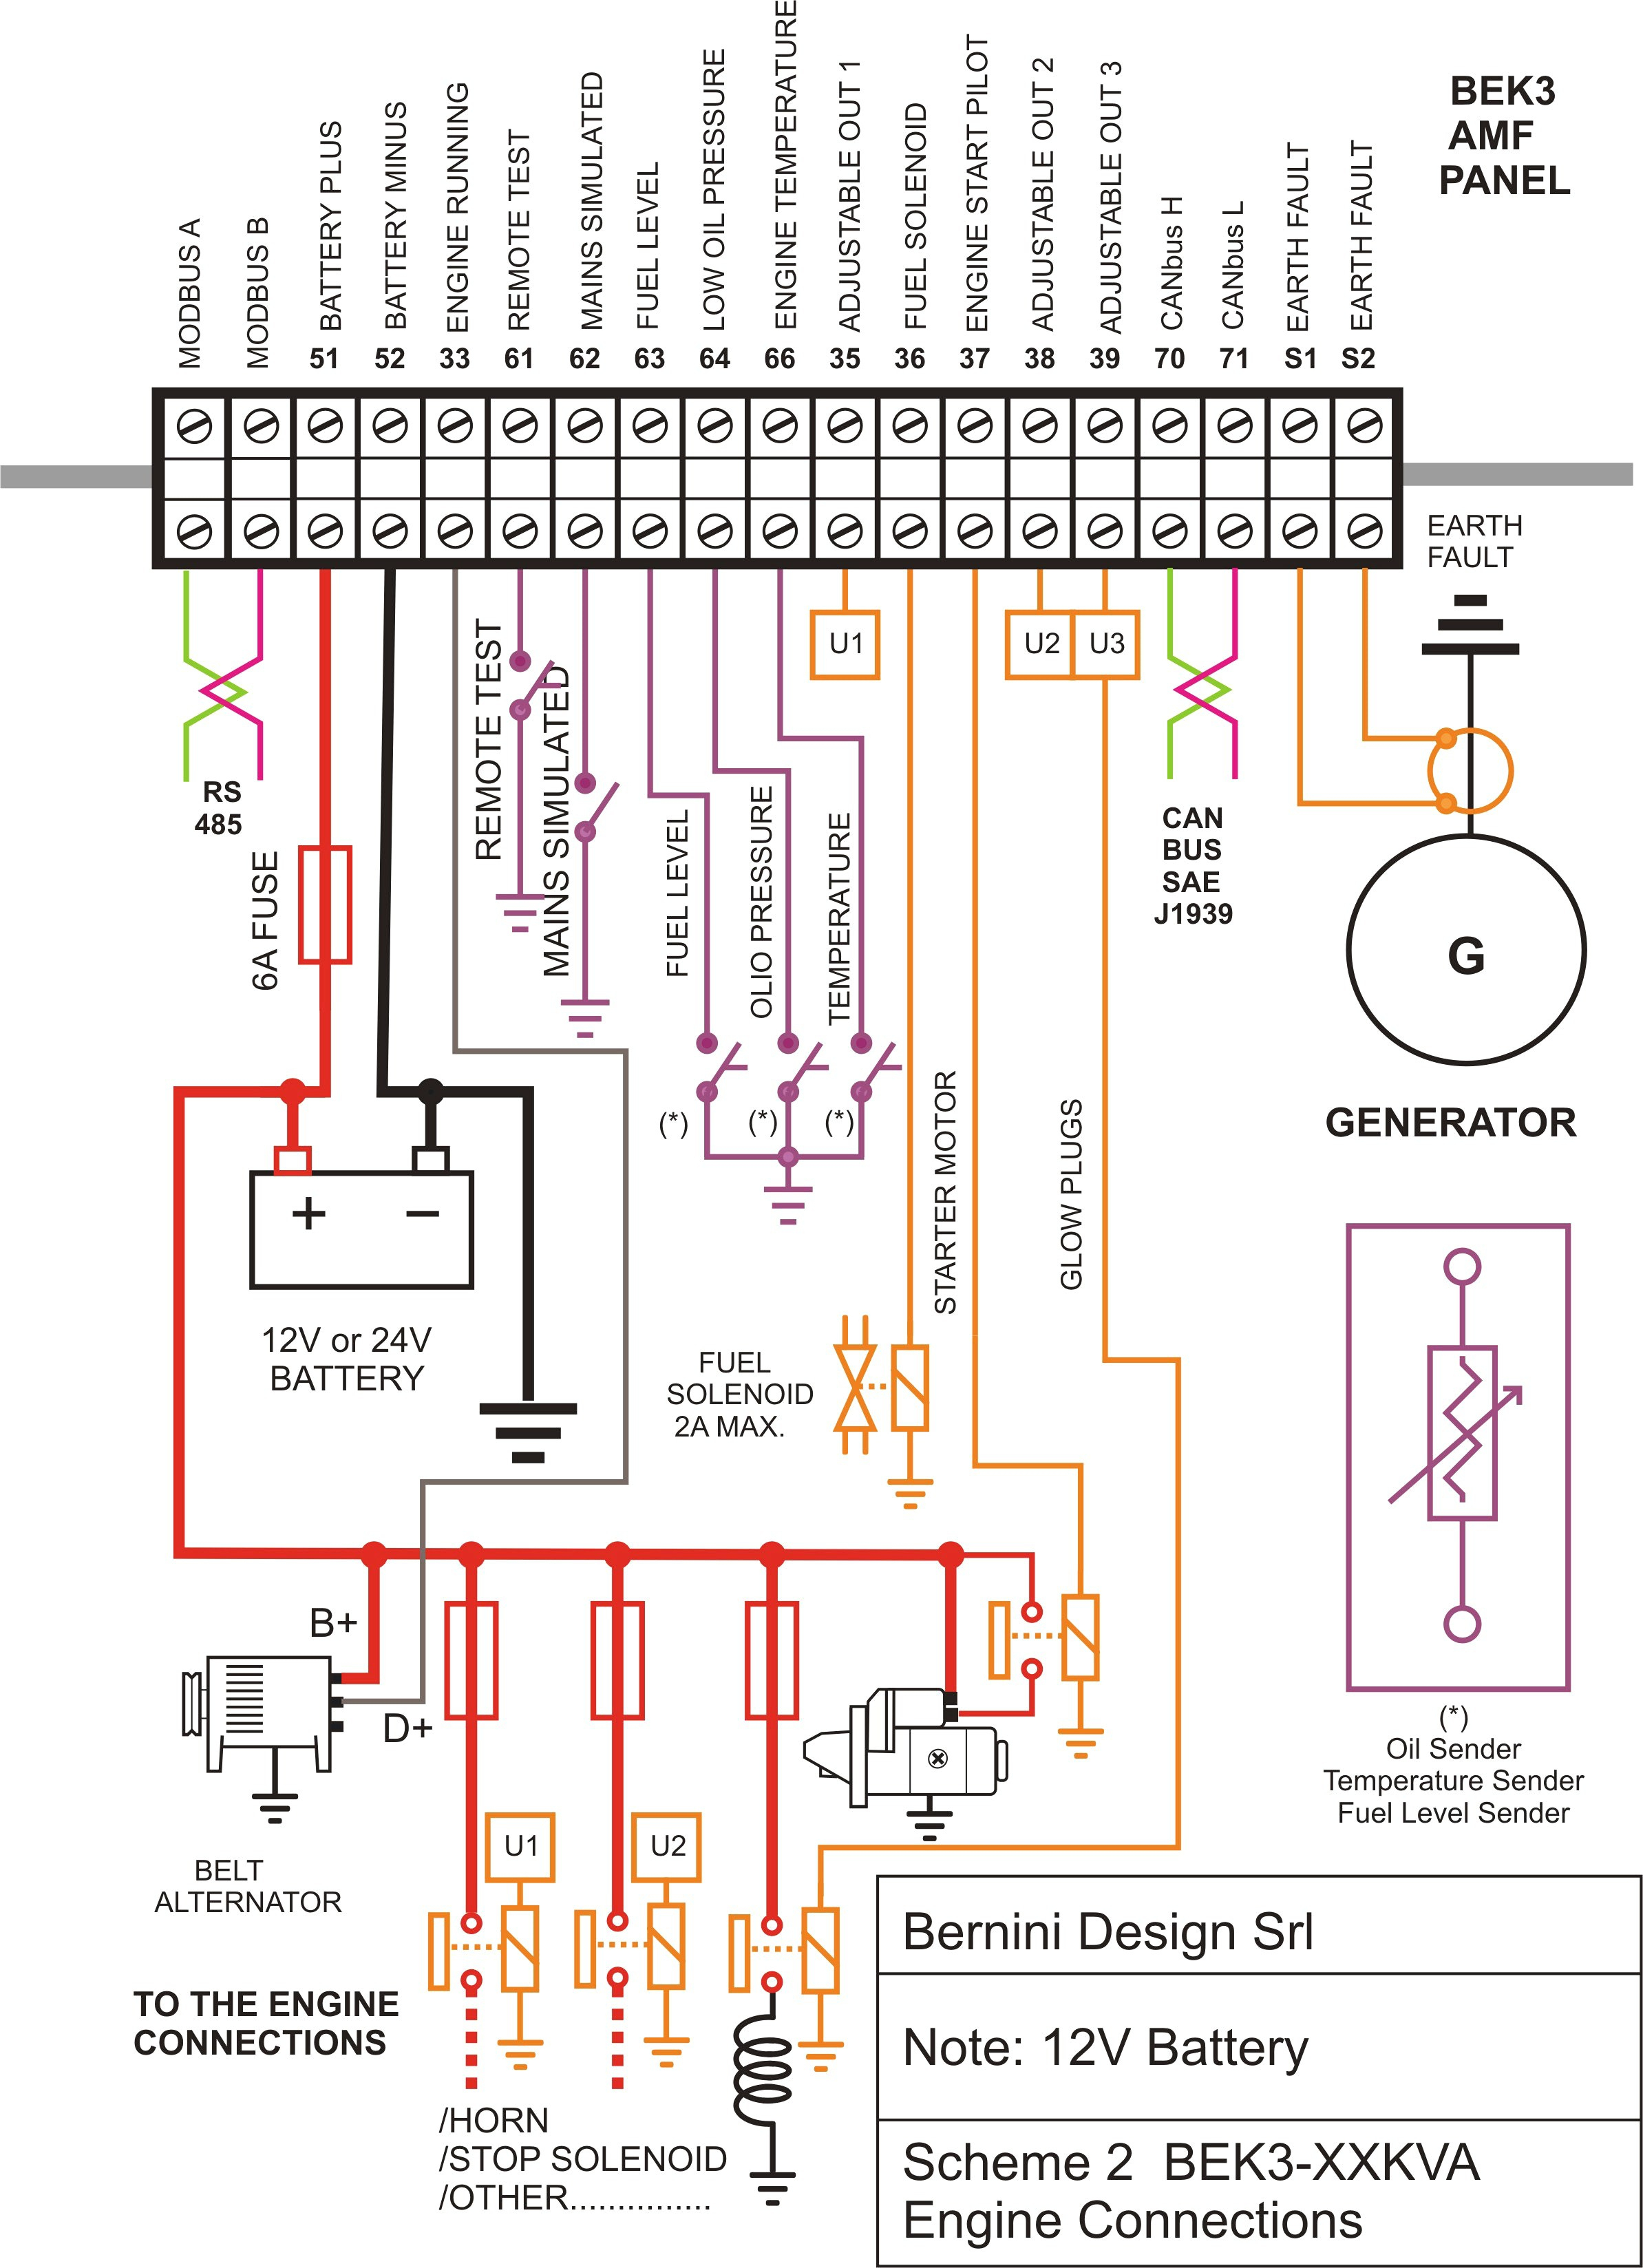 Circuit Breaker Panel Wiring Diagram Pdf Awesome Home Fuse Box At - Circuit Breaker Panel Wiring Diagram Pdf